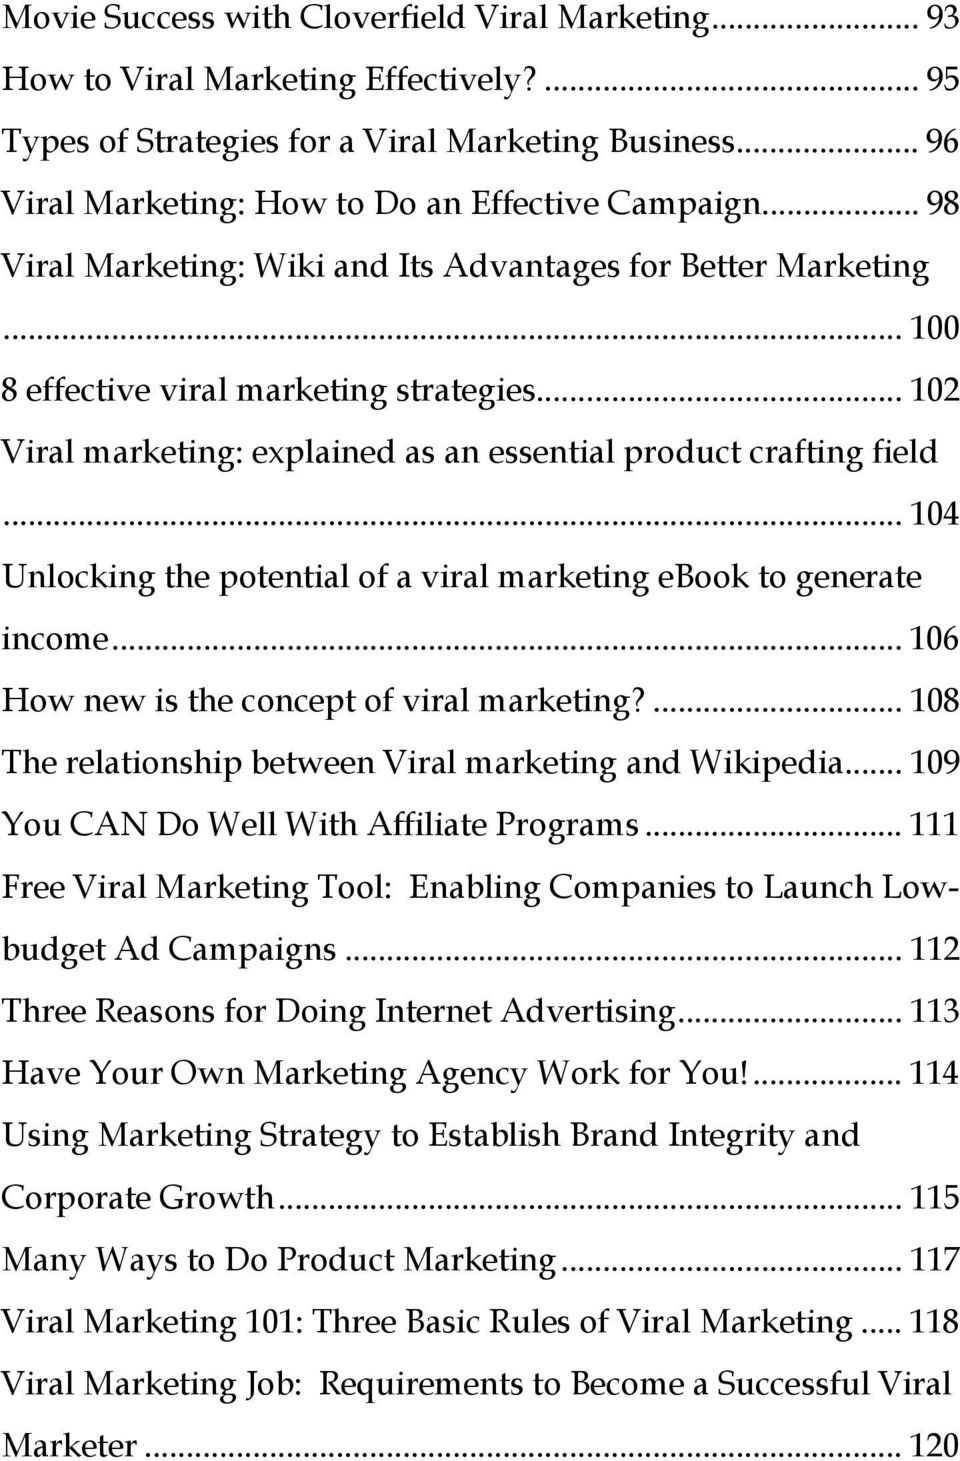 .. 104 Unlocking the potential of a viral marketing ebook to generate income... 106 How new is the concept of viral marketing?... 108 The relationship between Viral marketing and Wikipedia.